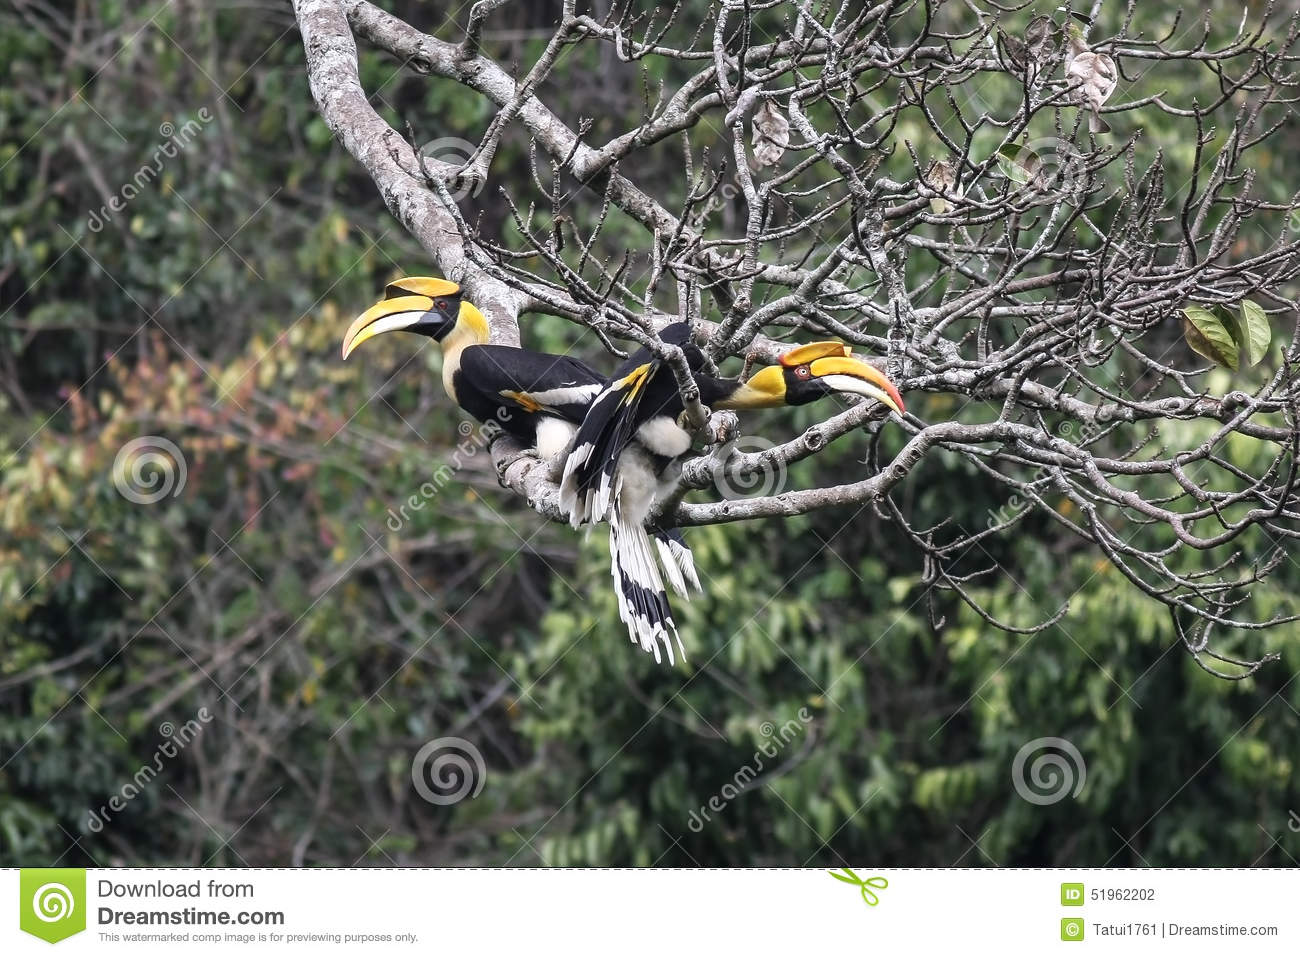 Royalty Free Stock Image London Girl Image16916206 additionally Private Screening Room likewise Stock Photo Japanese Gate Image24496810 furthermore Royalty Free Stock Image Happy Asian Family Image1522736 likewise Stock Photo Couple Great Hornbill Nature Thewild Kaeng Krachan National Park Thailand Image51962202. on asian architecture design